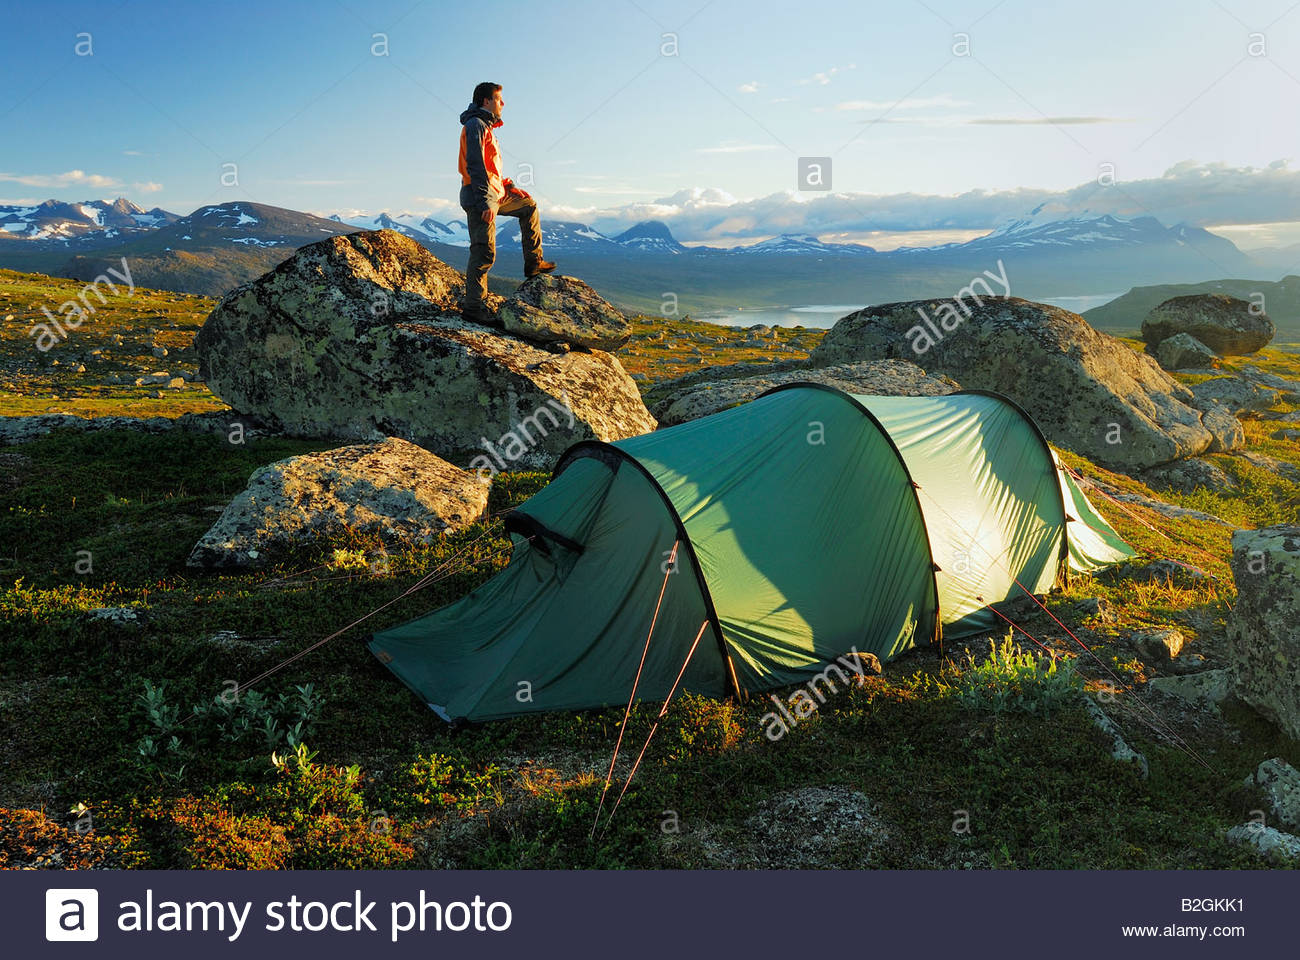 stock photo akka massif outdoor camp ground camping lapland sweden